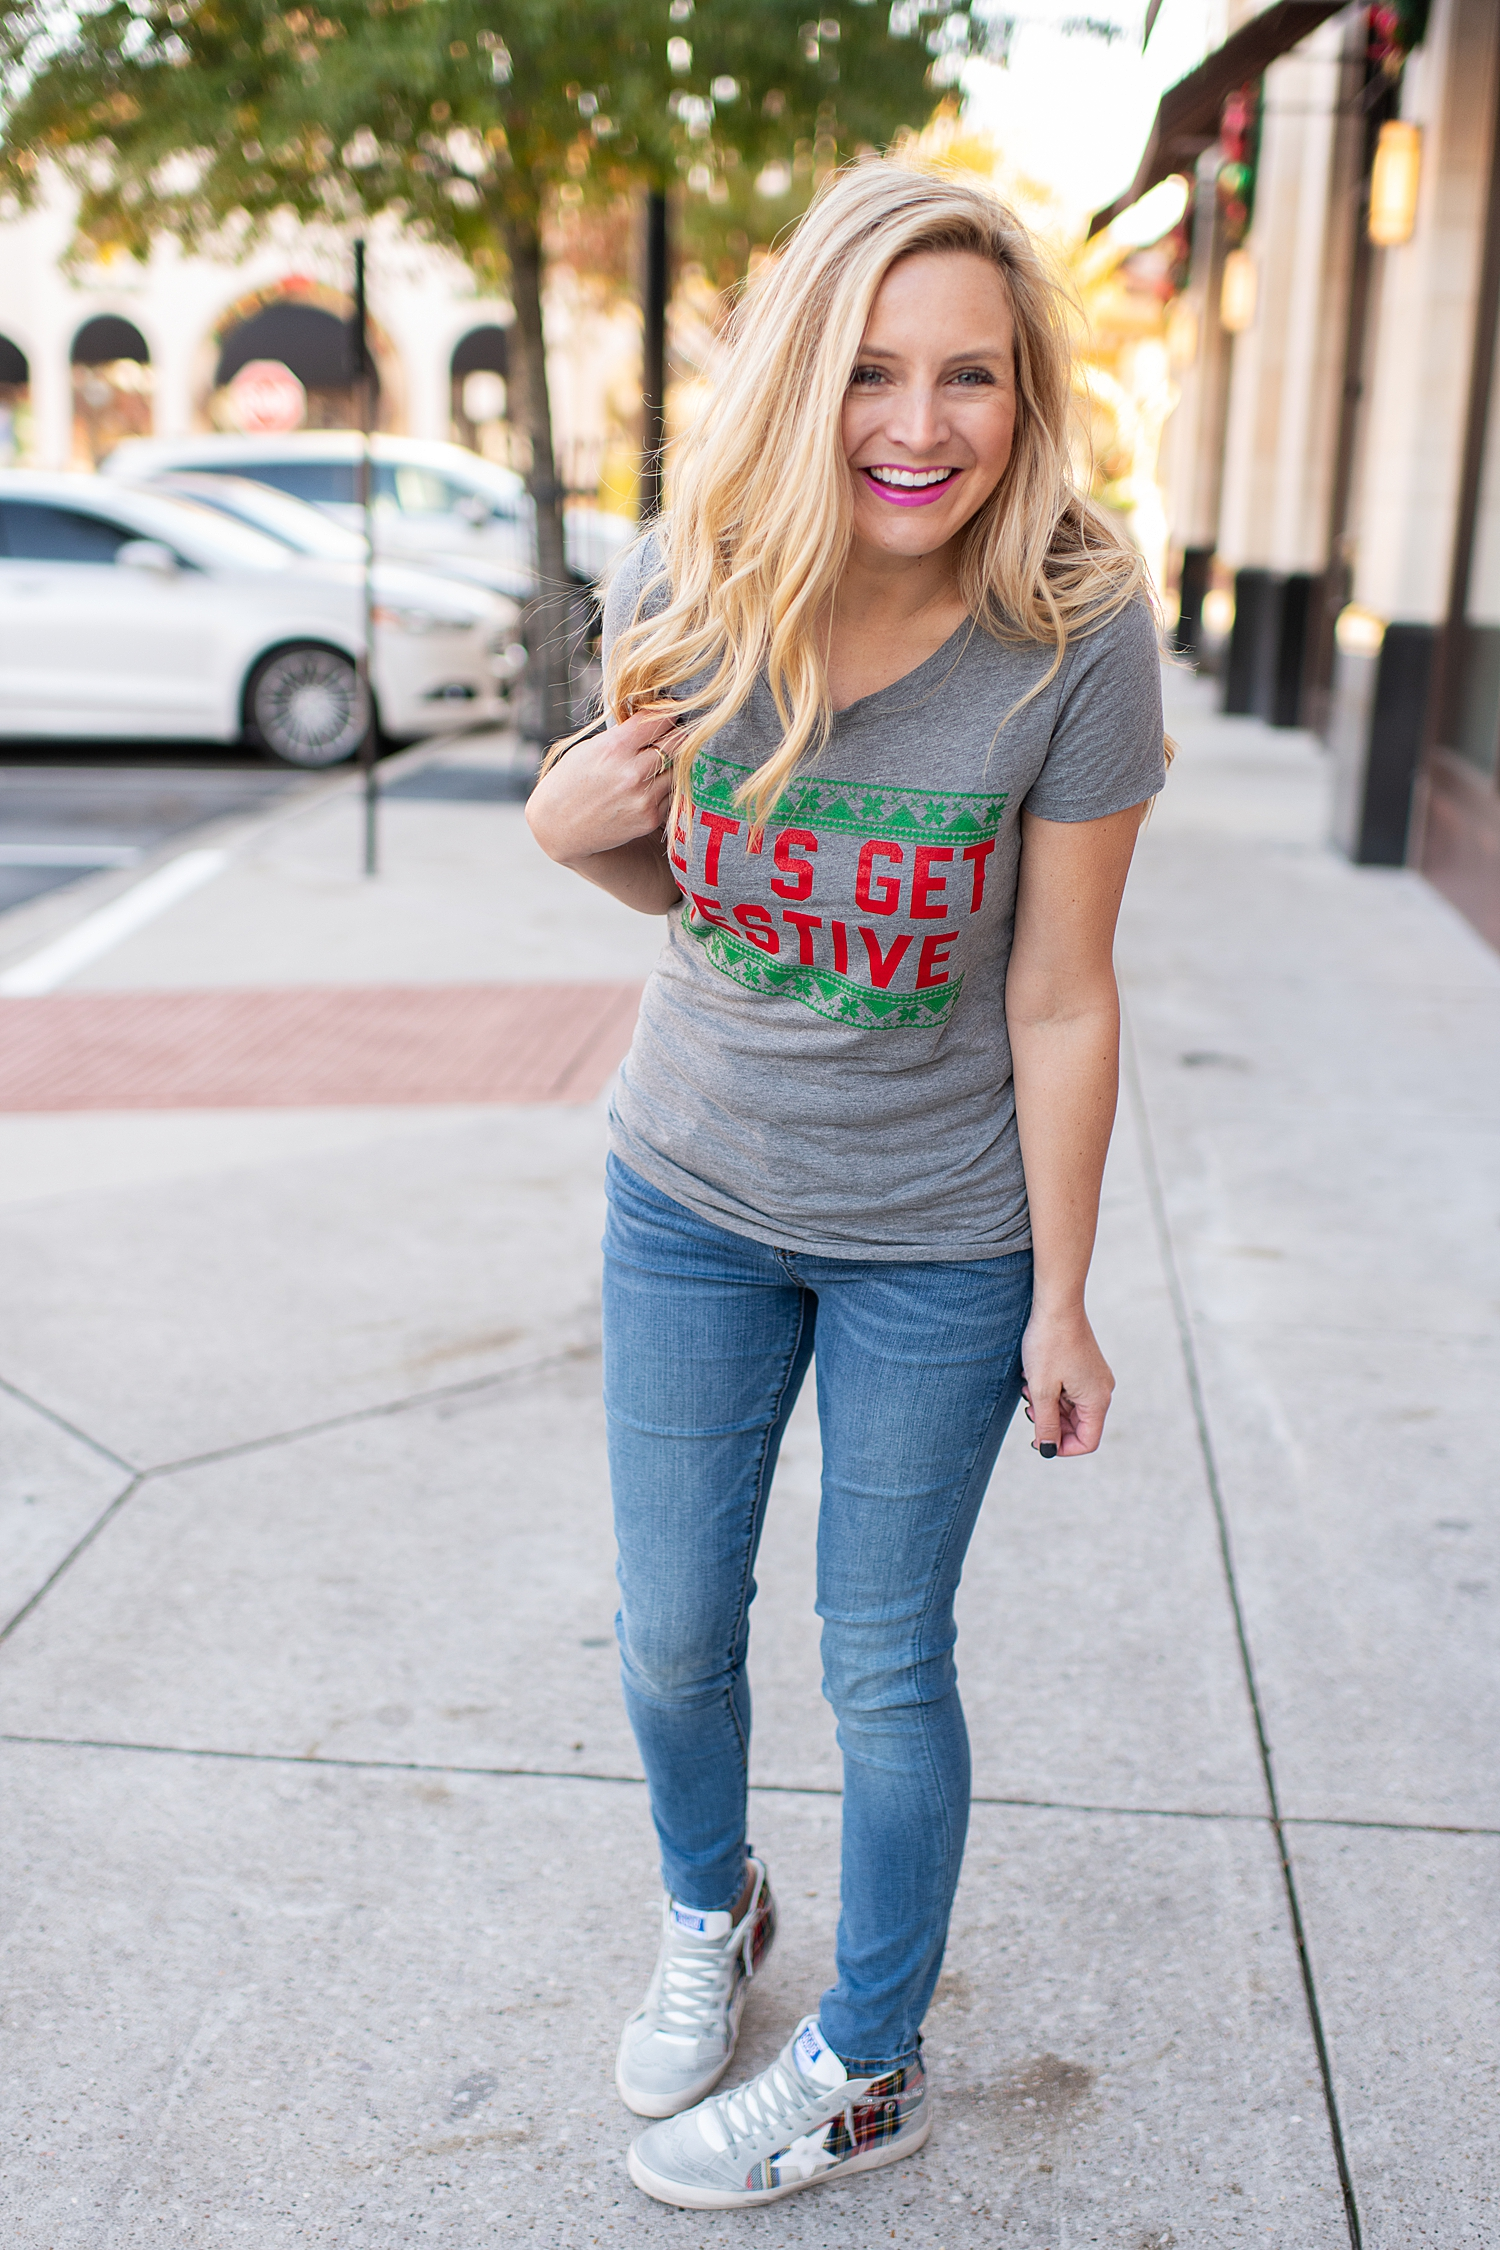 Fancy Ashley x Social Threads collection featured by top Houston fashion blogger, Fancy Ashley: image of a woman wearing a Social Threads festive graphic tee, Social Threads skinny jeans and Golden Goose sneakers